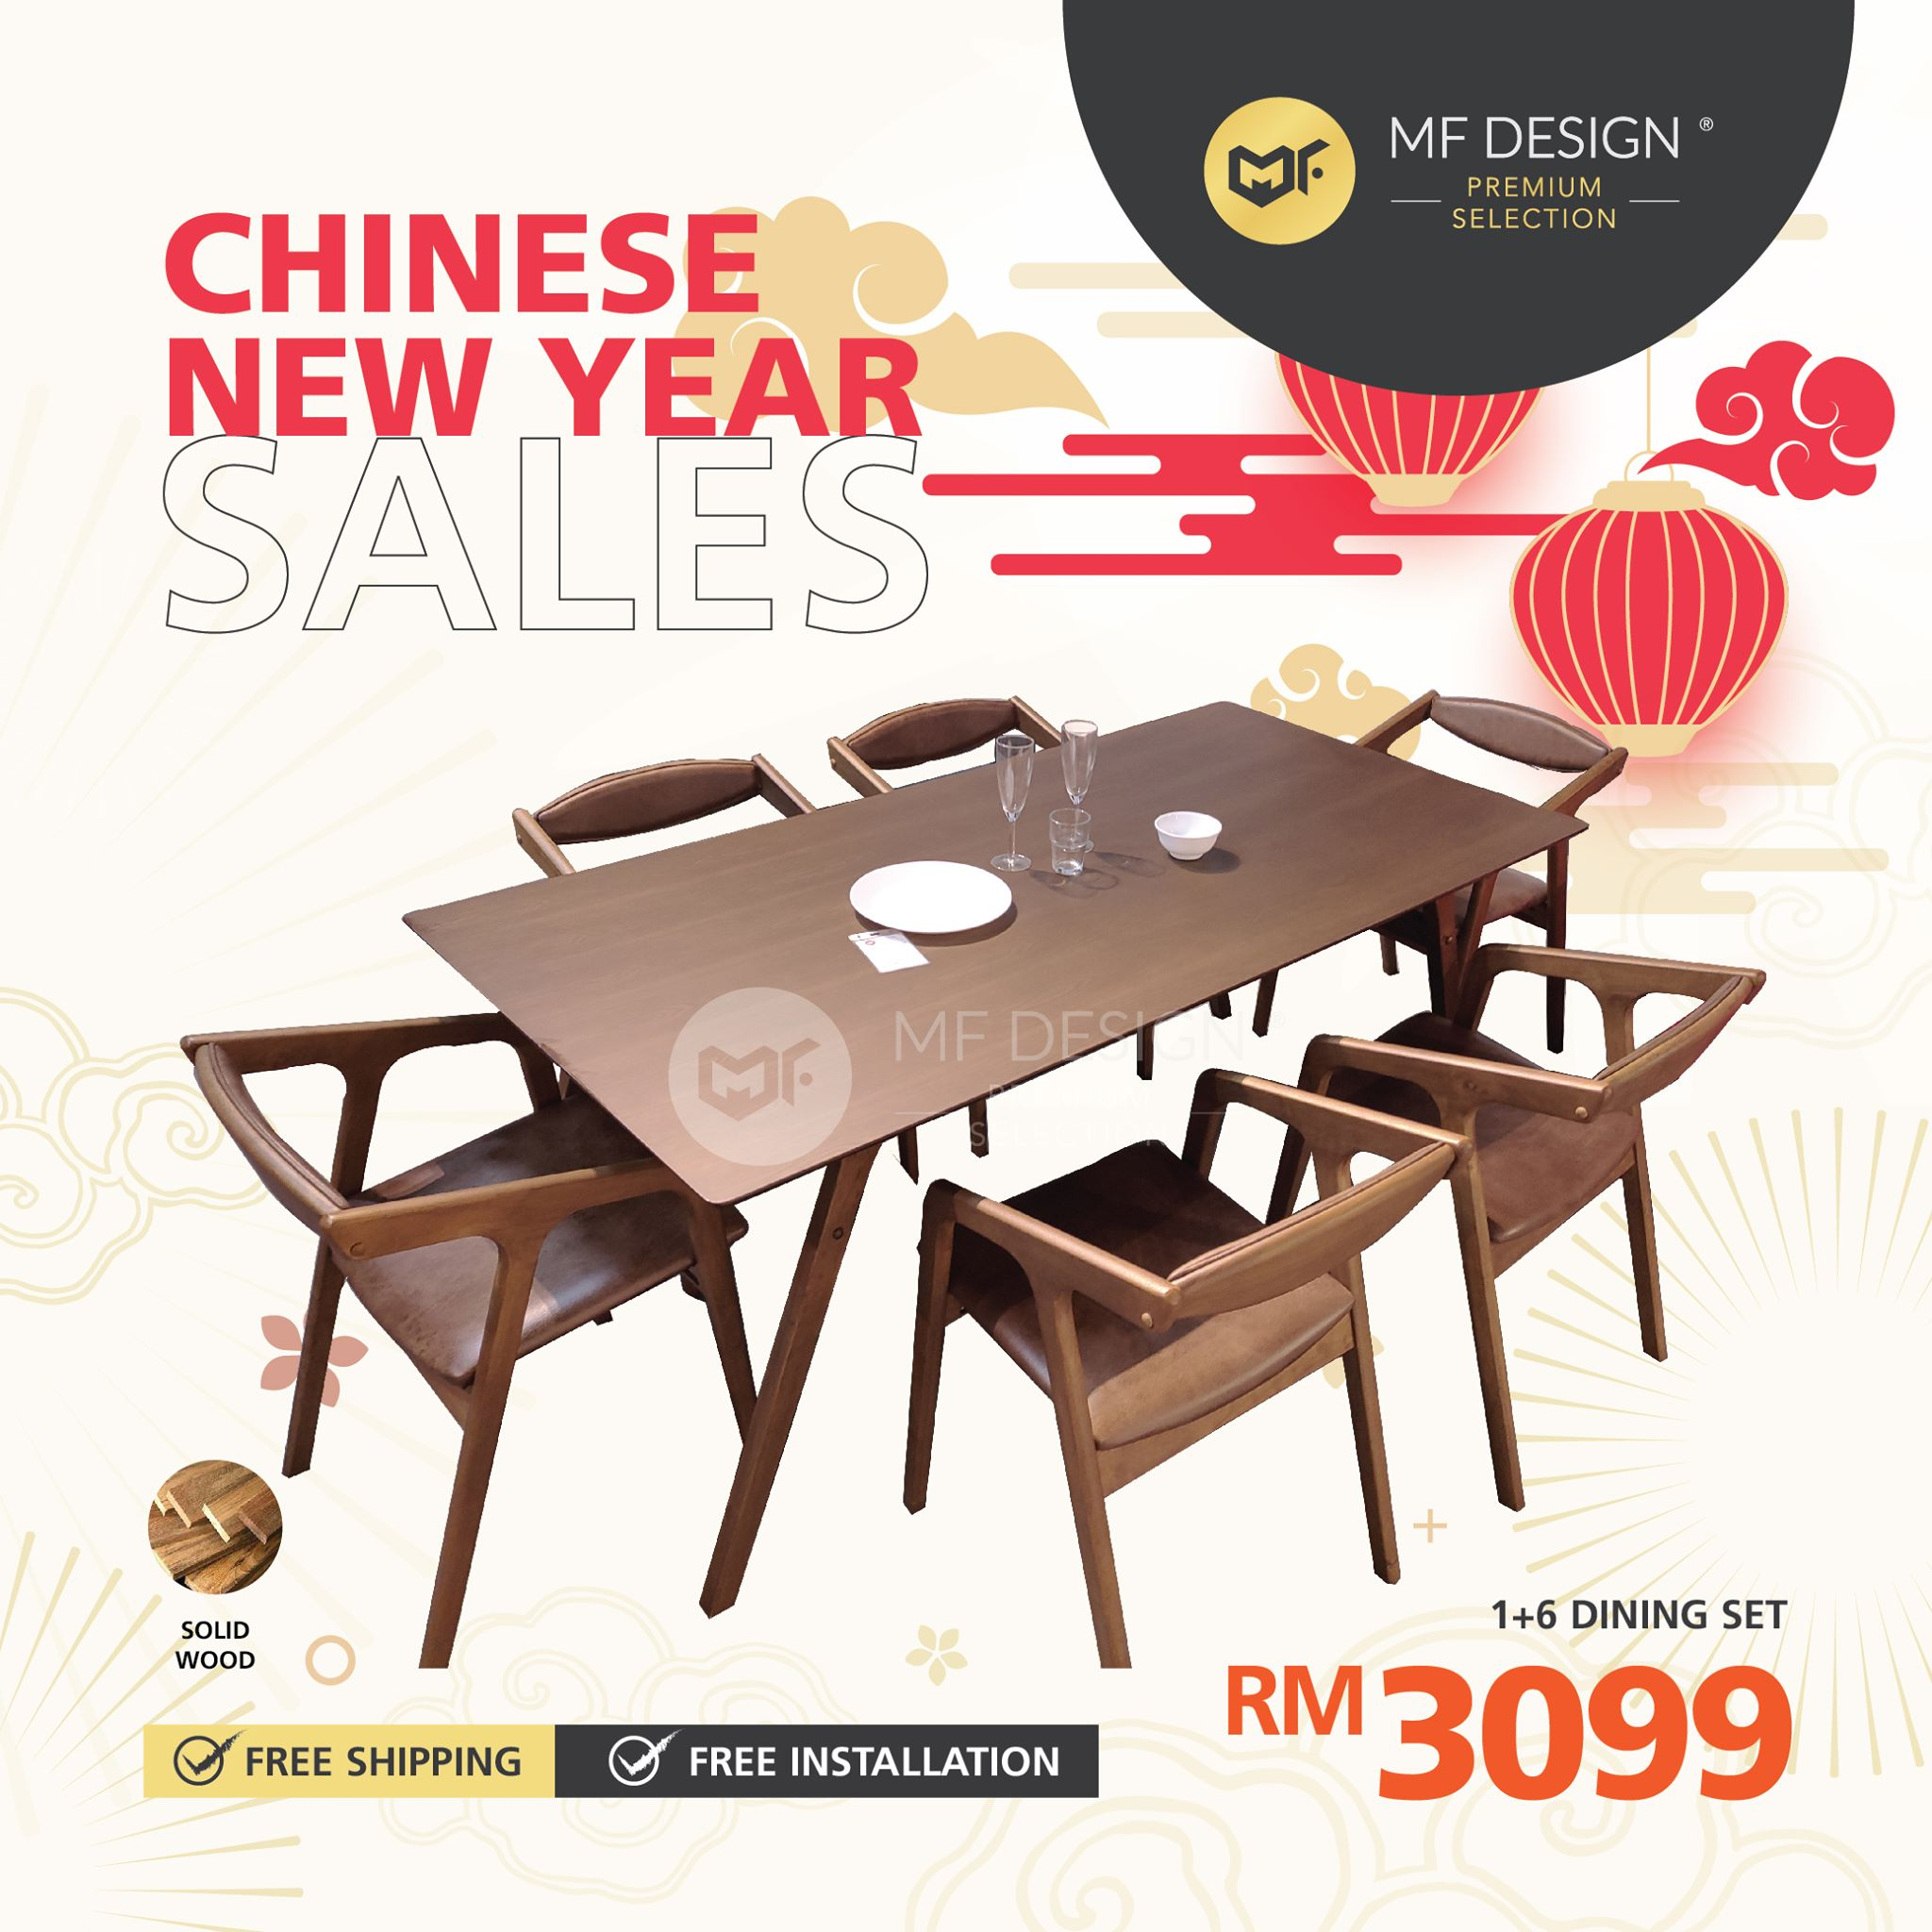 (Free Delivery) MFD Premium Tristan Dining Set  / 1+6 Set / Chair / Table / 6 Seater / Meja Makan Kerusi